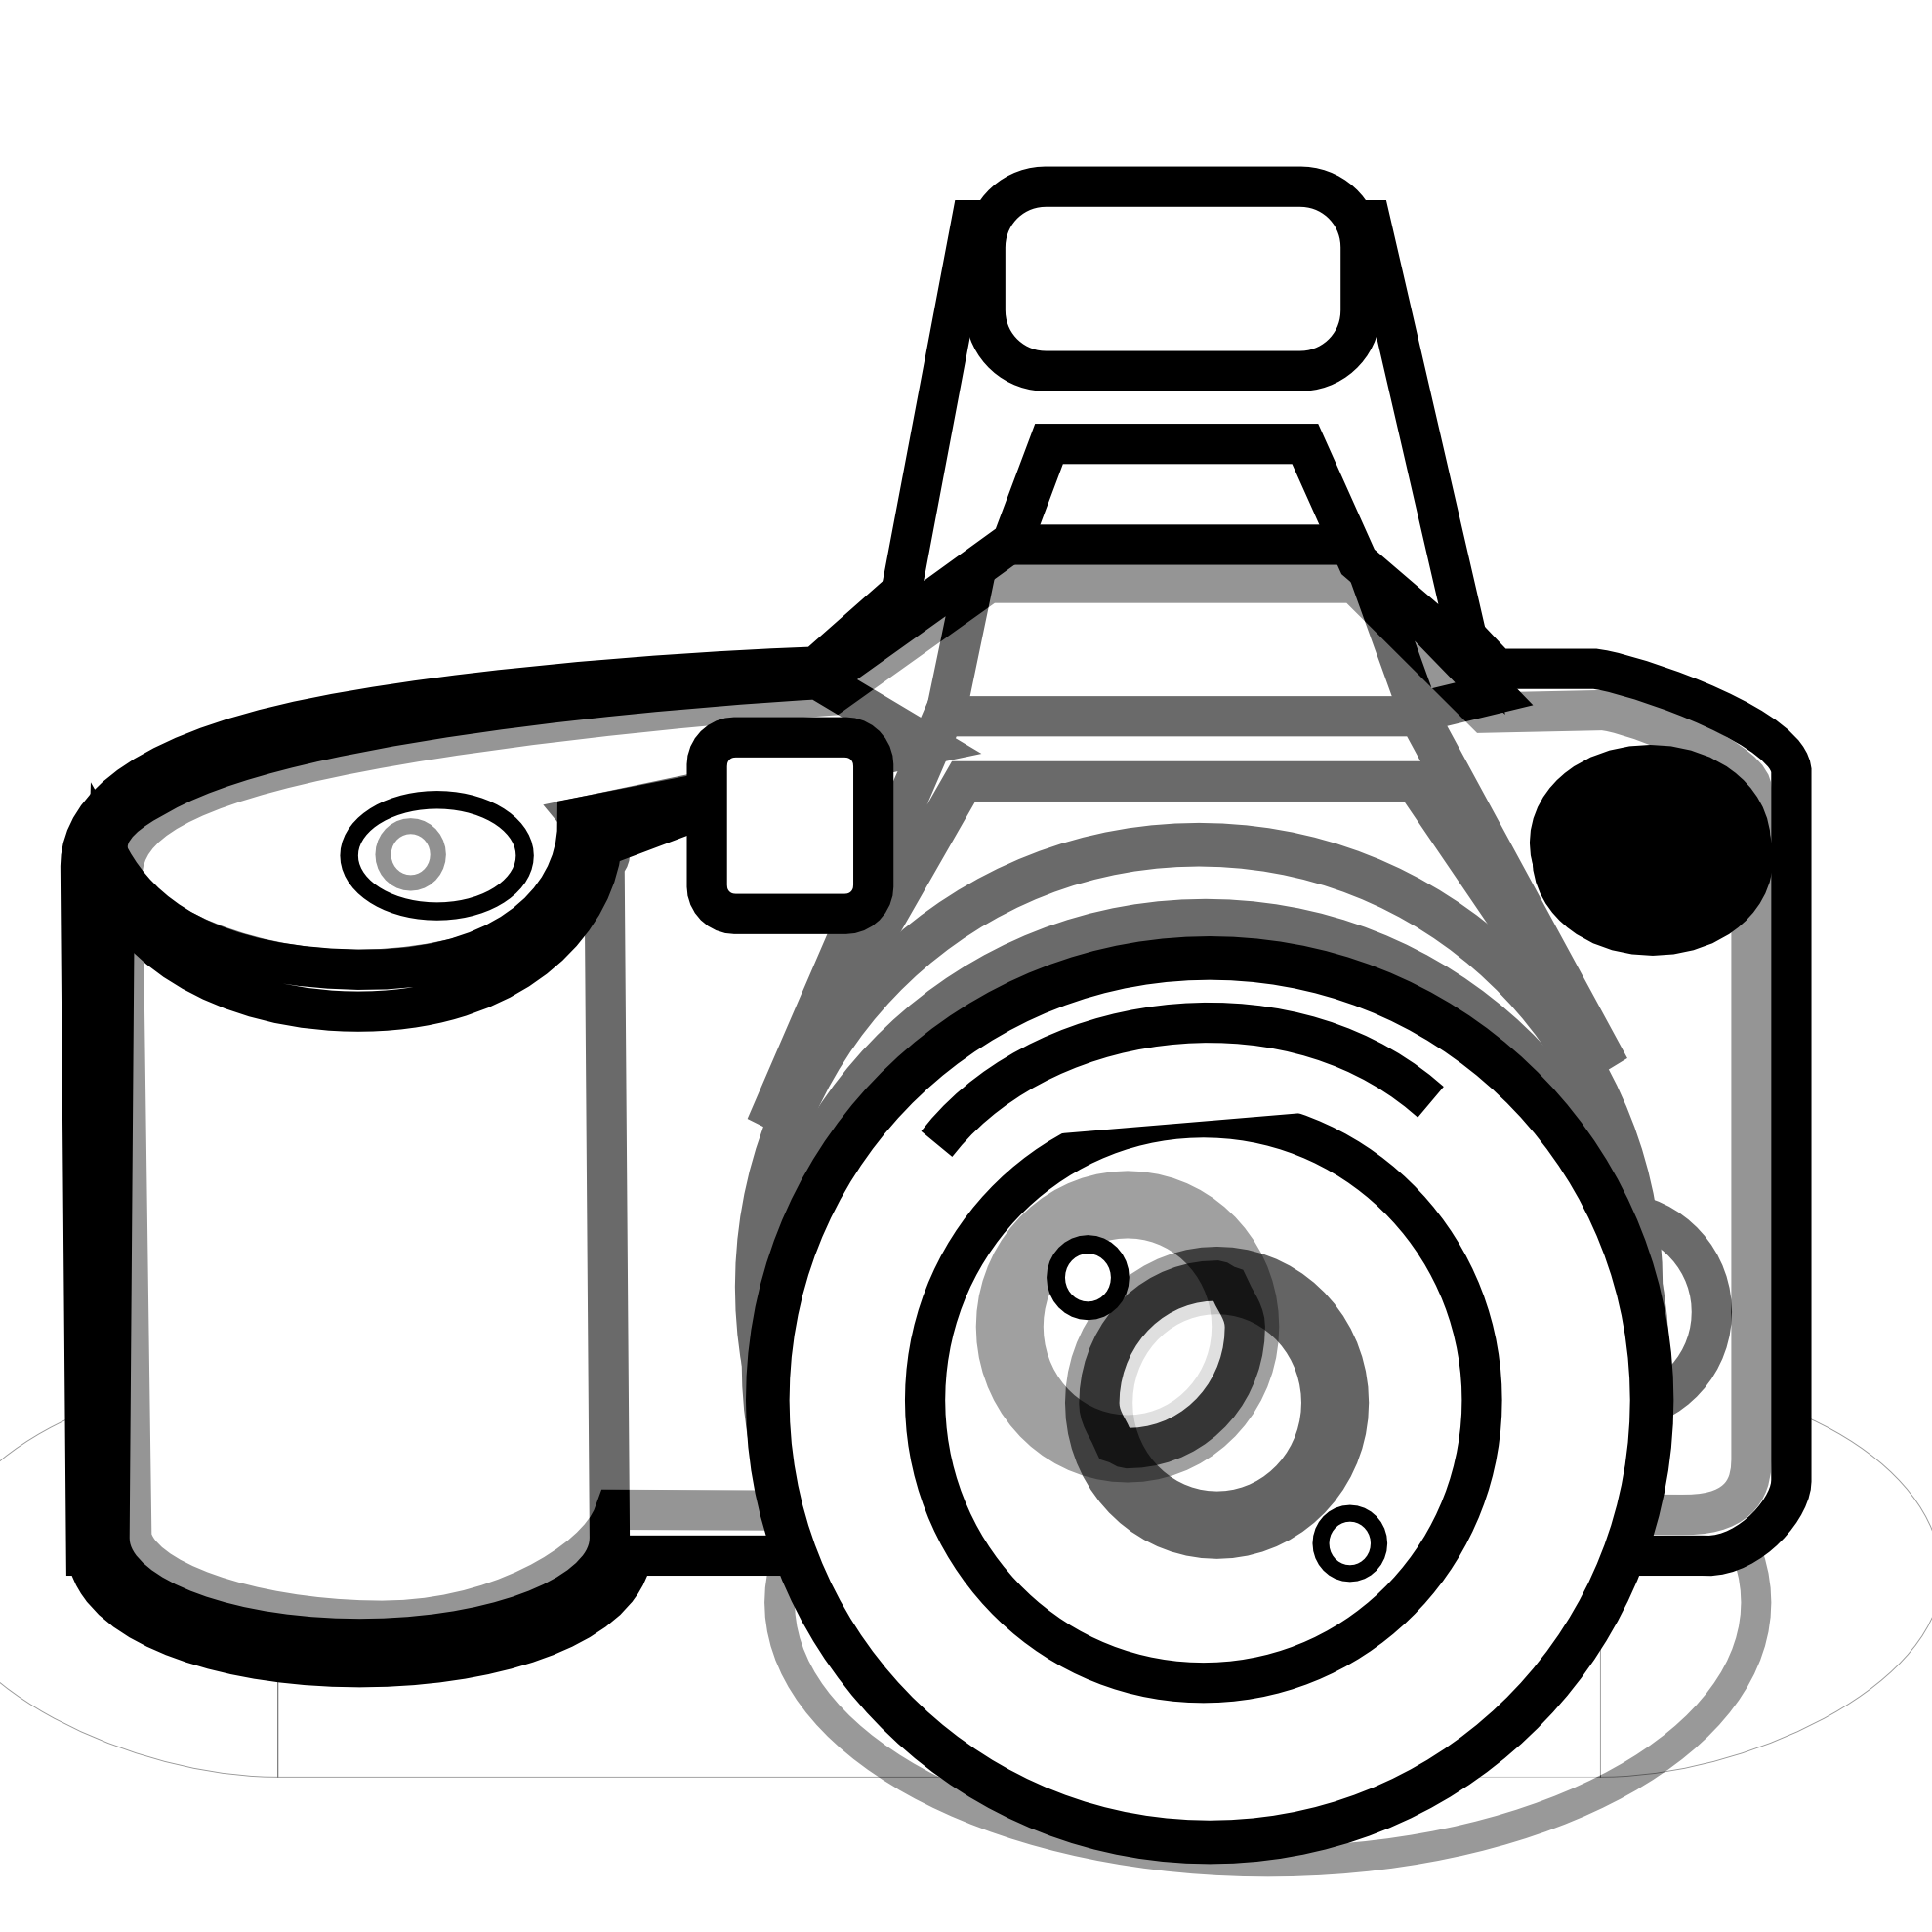 Free Camera Line Art, Download Free Clip Art, Free Clip Art.